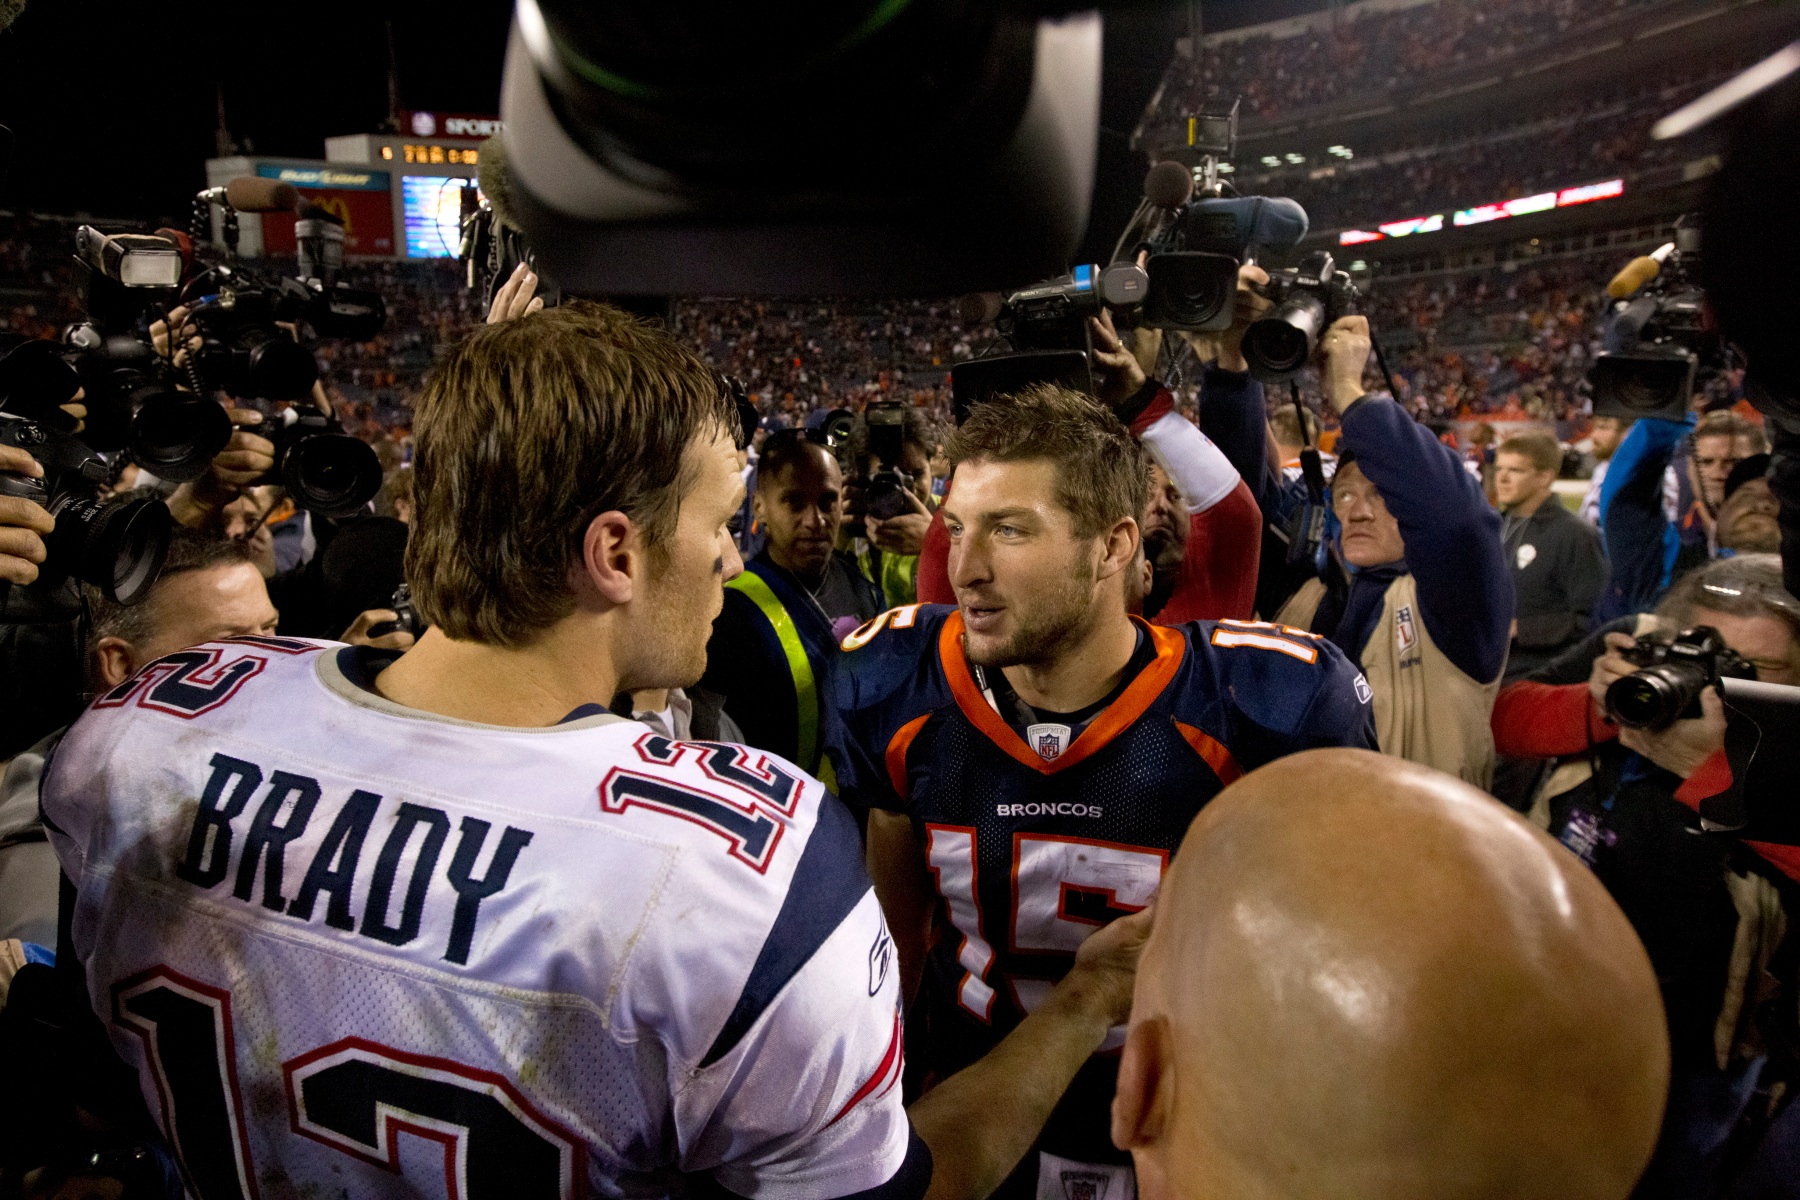 New England Patriots Tom Brady and Denver Broncos Tim Tebow meet after the Patriots defeated the Broncos 41-23 at Sports Authority Field on Sunday, Dec. 18, 2011. (Photo by Matthew J. Lee/The Boston Globe via Getty Images)